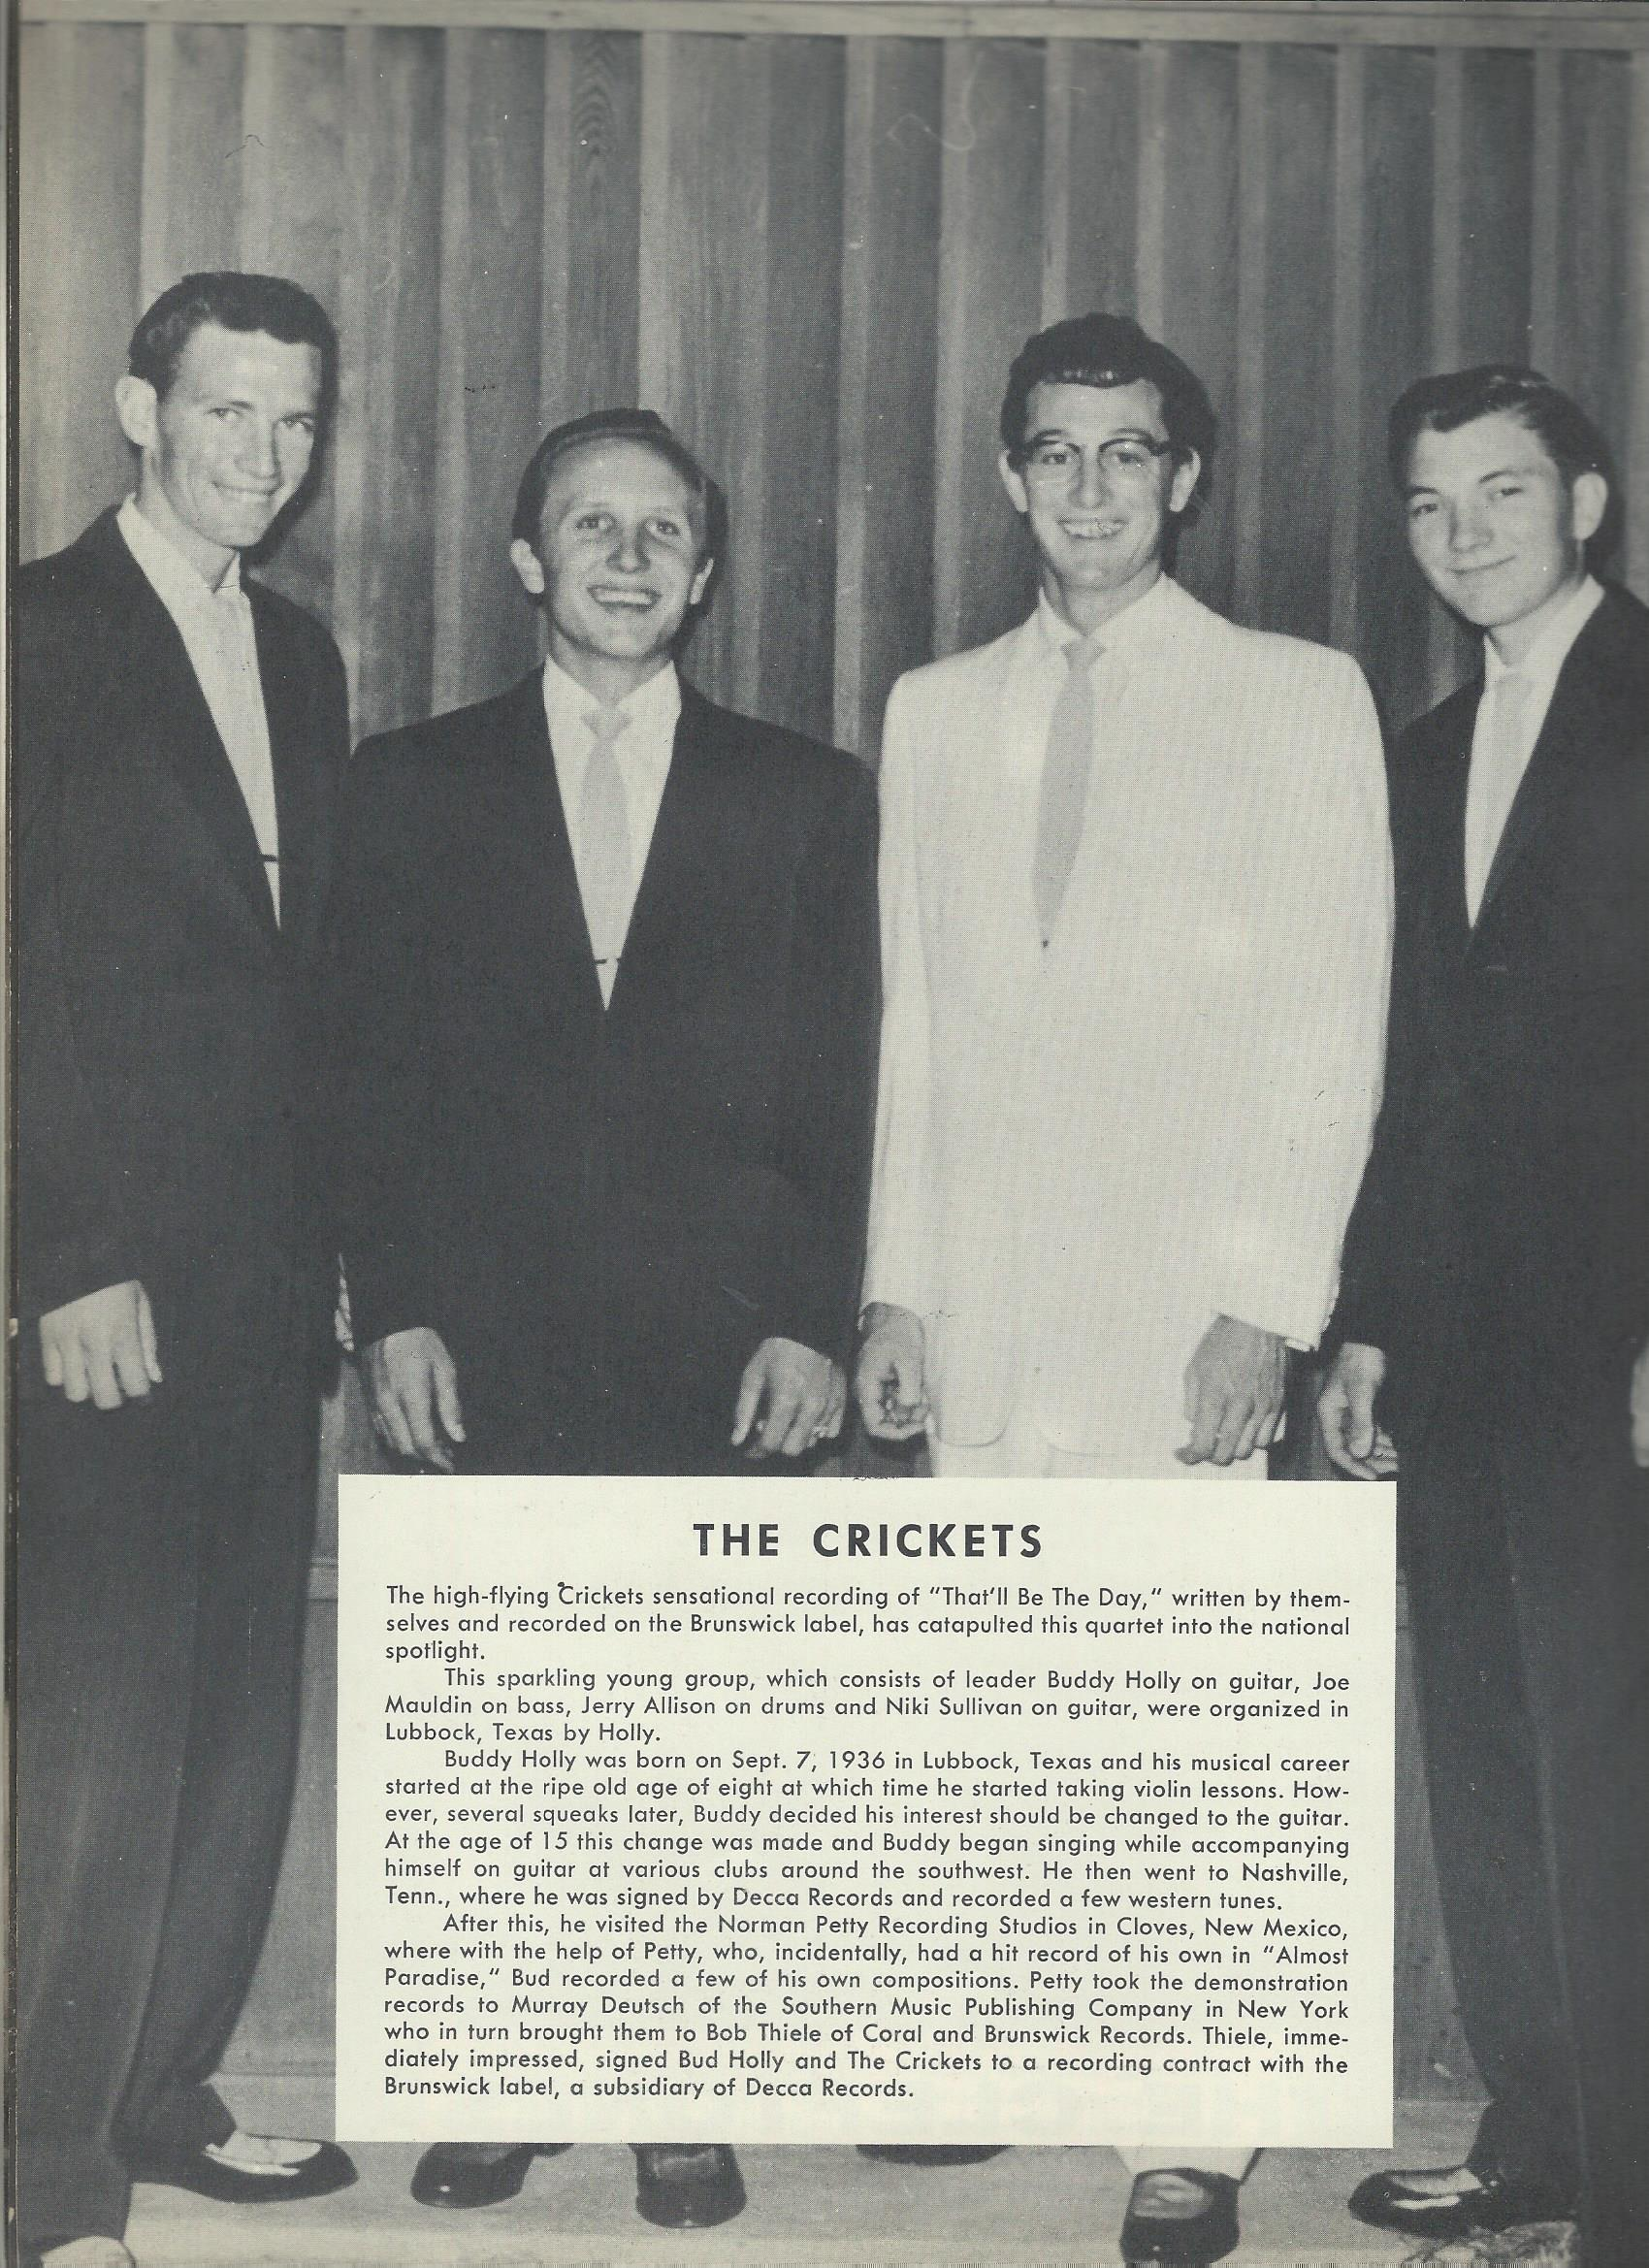 Buddy Holly & the Crickets - souvenir programm3